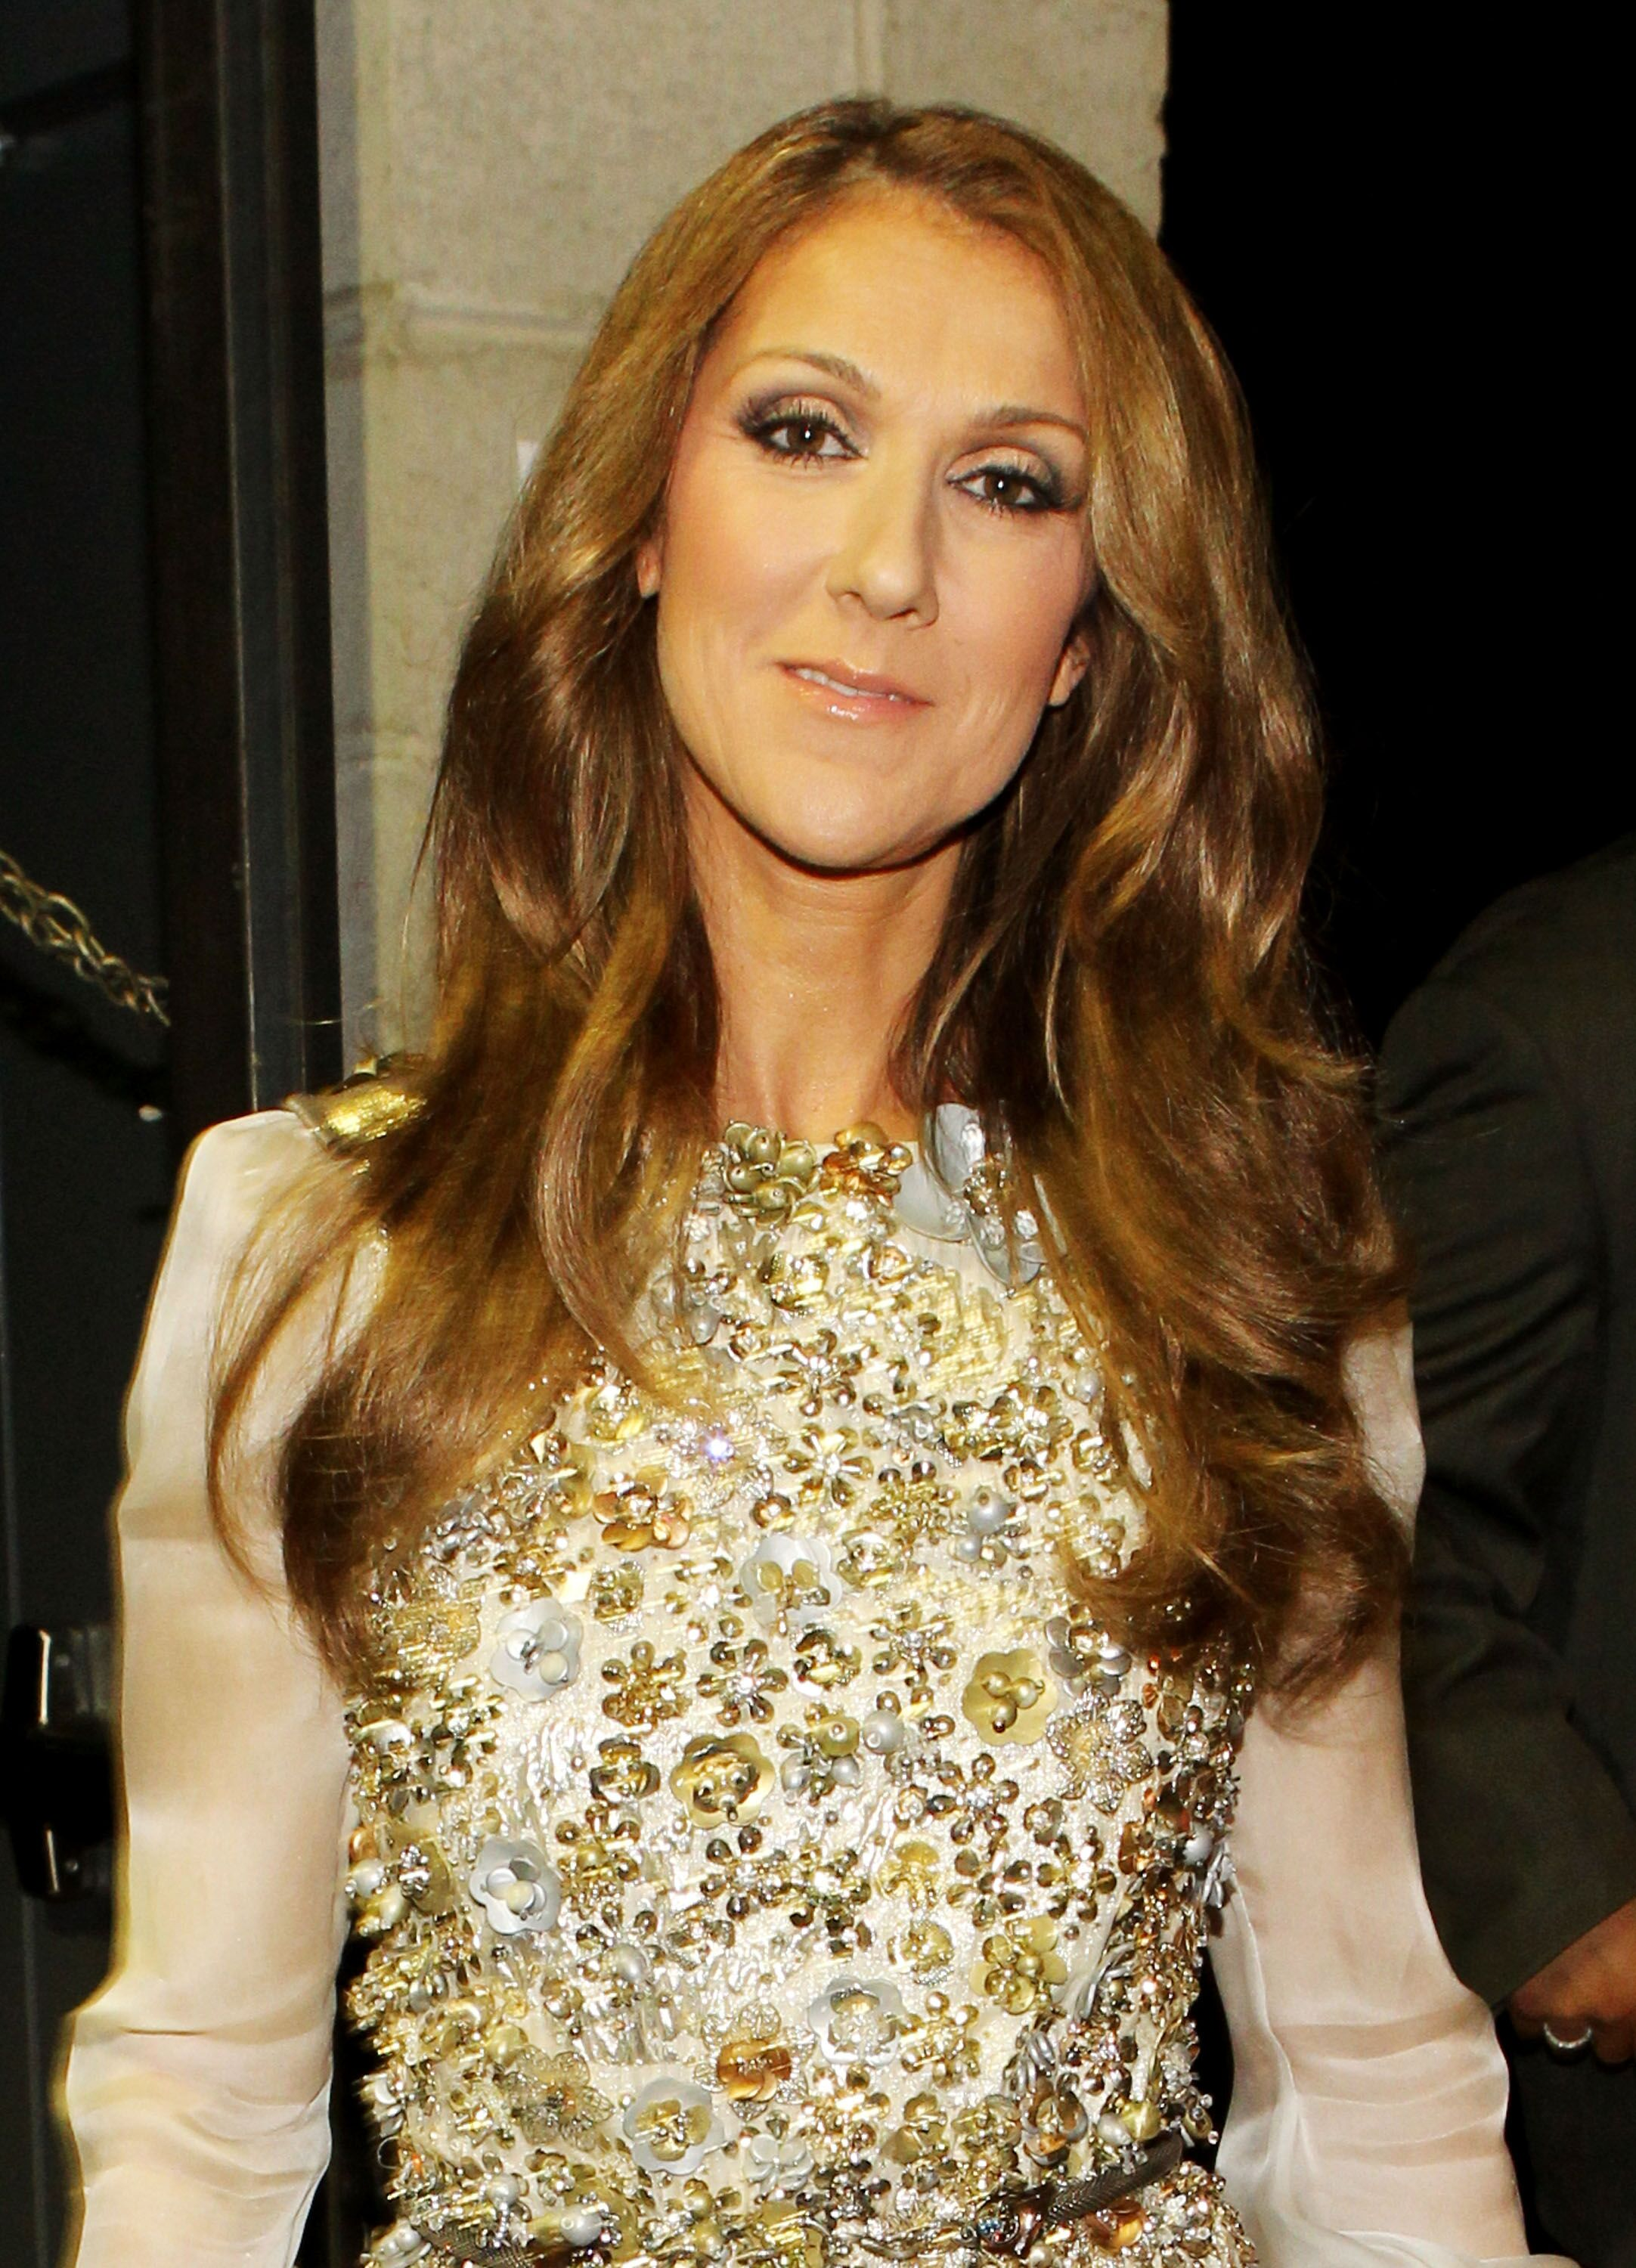 Singer Celine Dion backstage during the 52nd Annual GRAMMY Awards. | Source: Getty Images